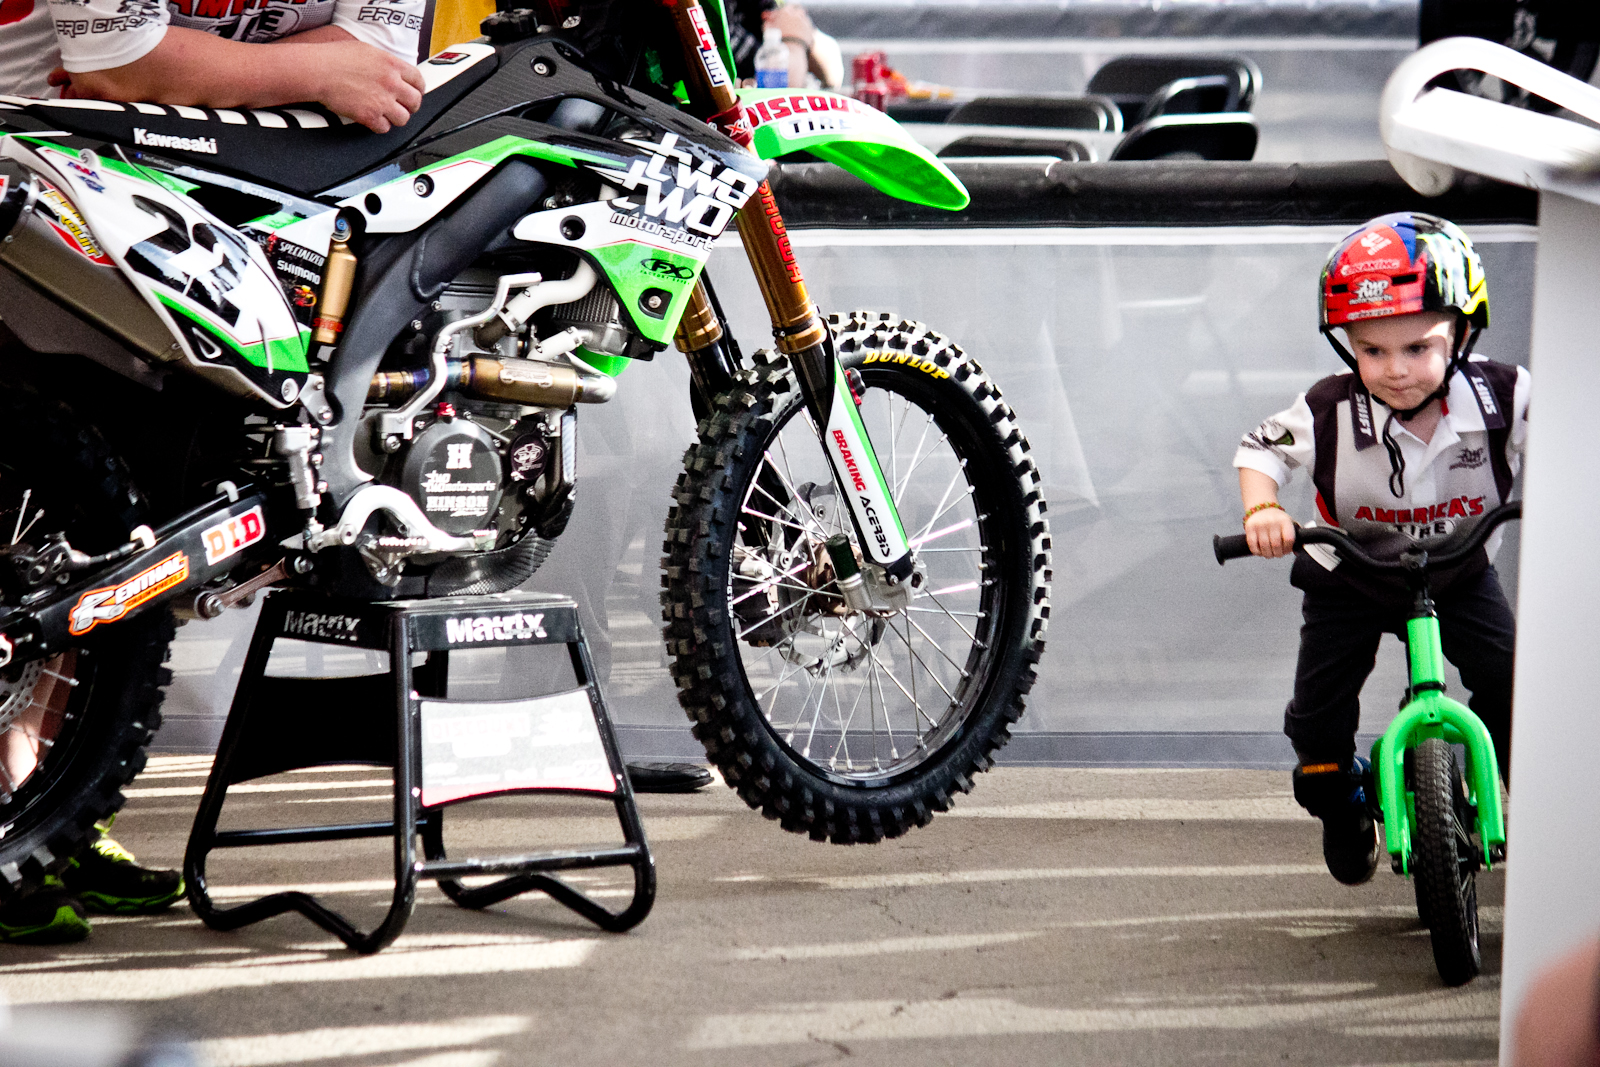 Chad Reed S Son Tate Tearing Up The Pits What The